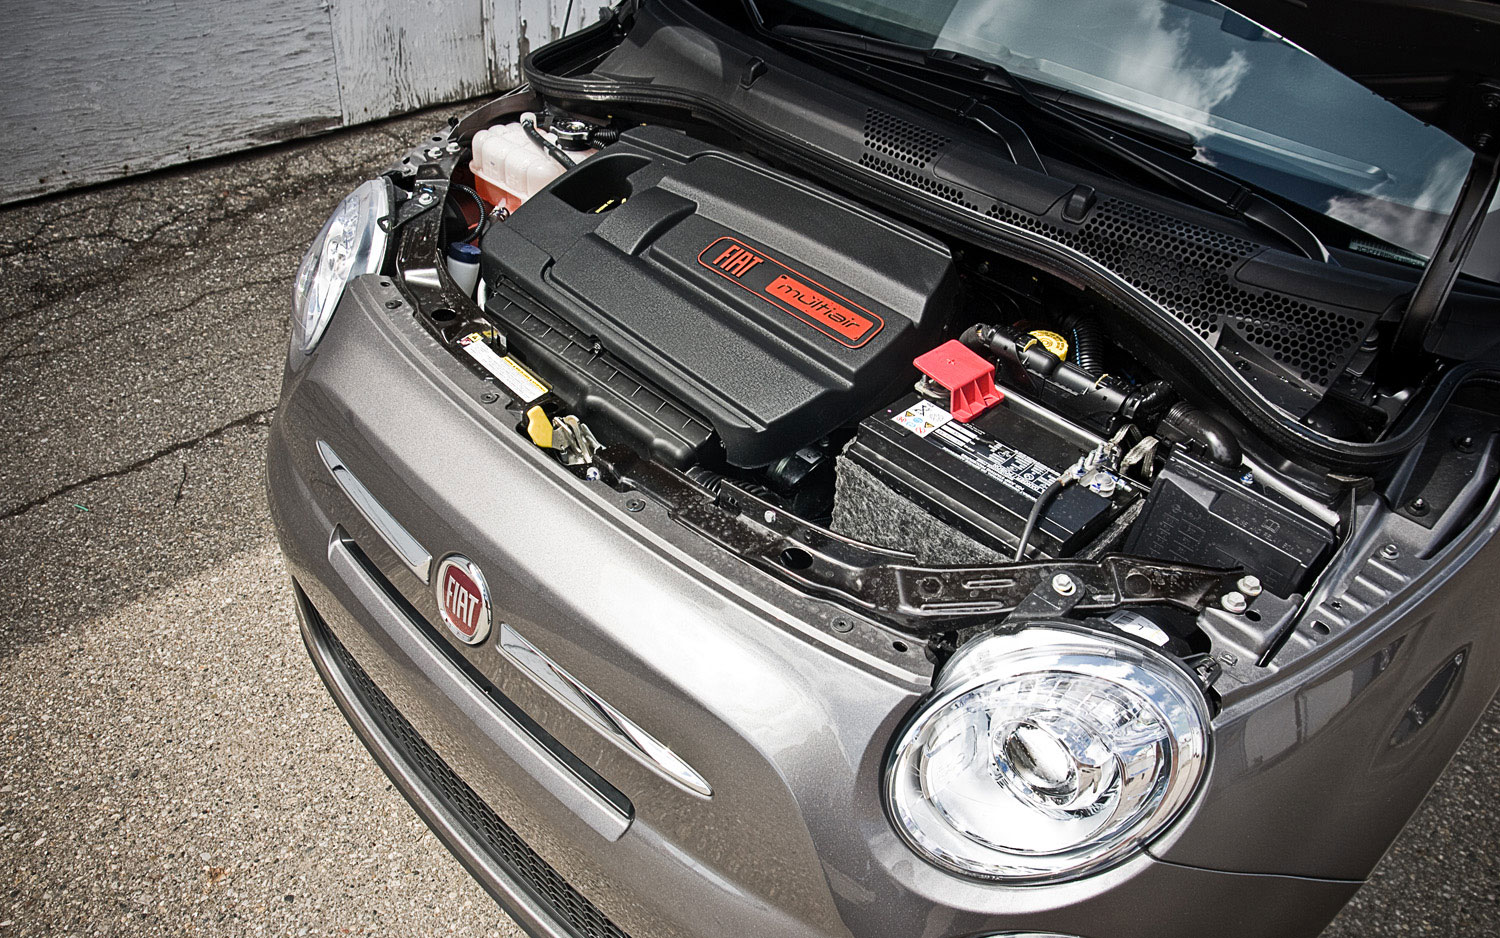 hight resolution of fiat 500 sport fuse box wiring 2012 fiat 500 fuse box fiat 500 fuse box diagram